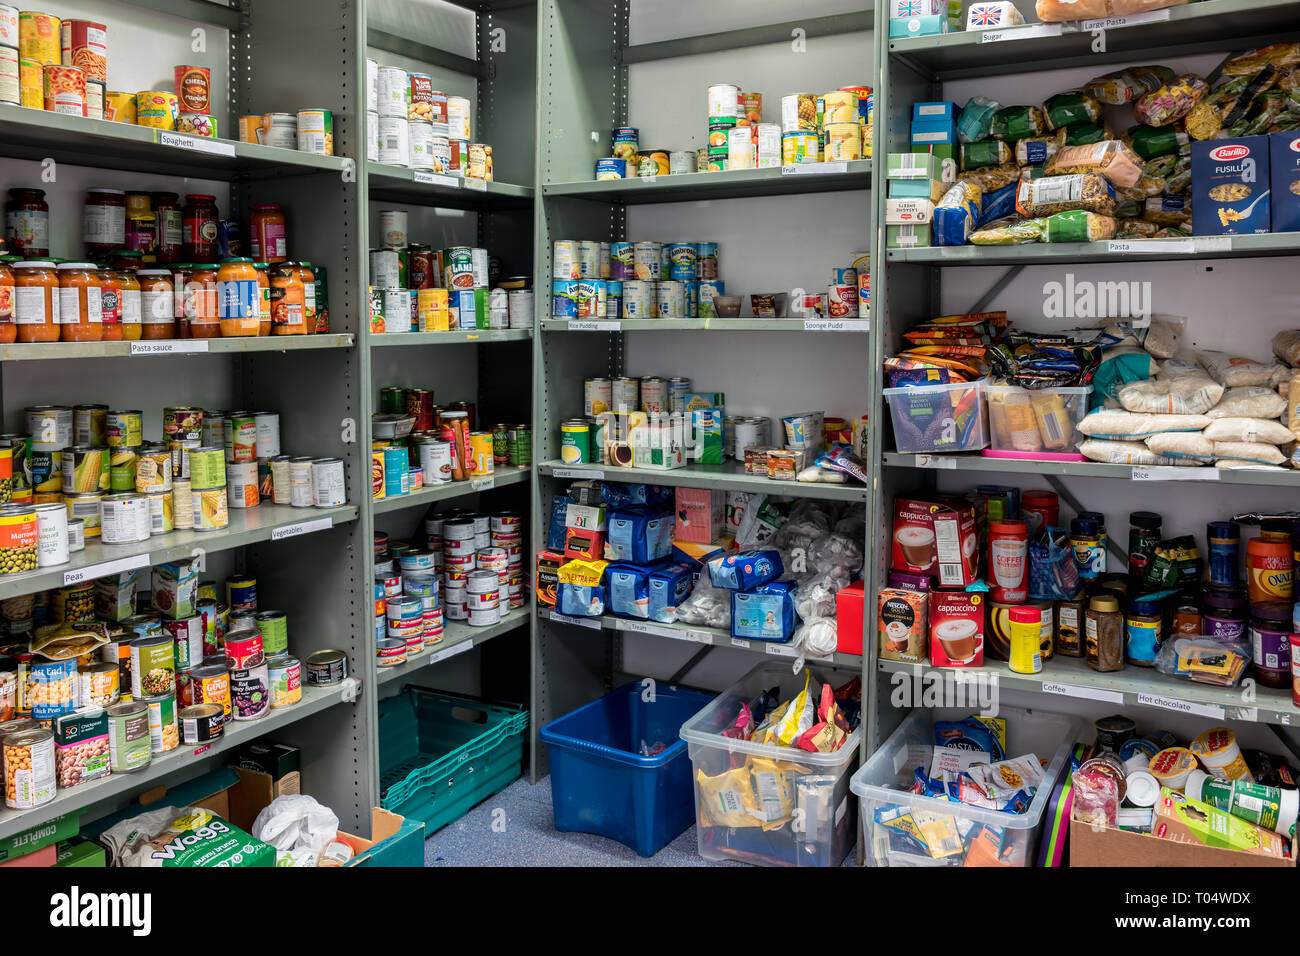 Storage shelves in a Trussell Trust local church food bank warehouse showing a variety of tins and store cupboard essentials ready for food parcels - Stock Image